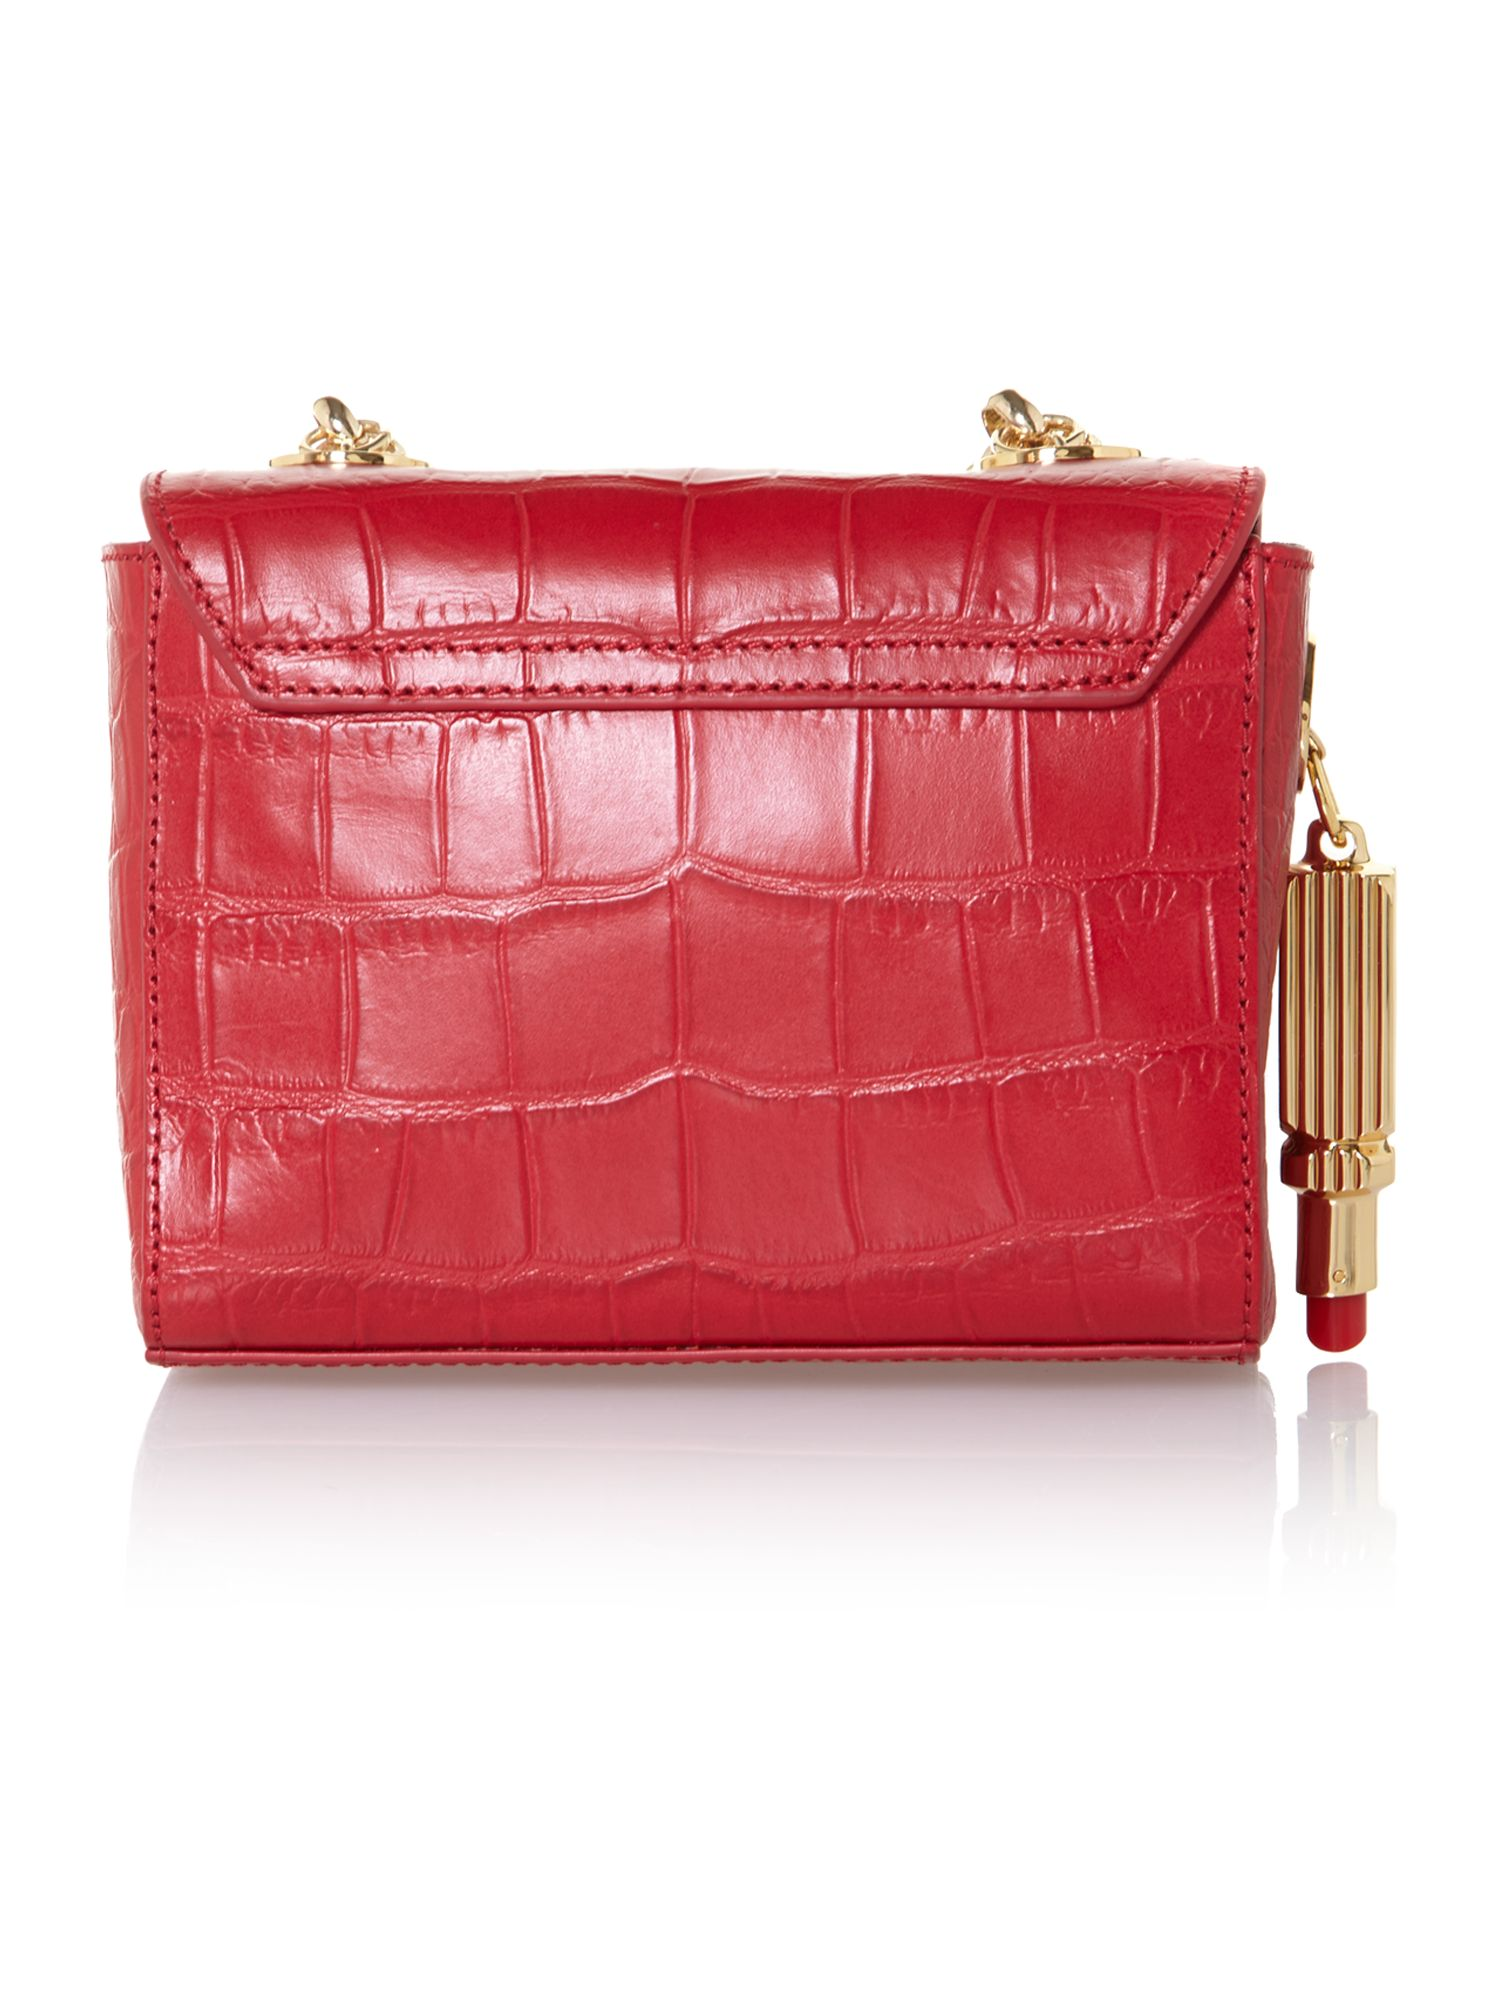 Verity small red crossbody bag